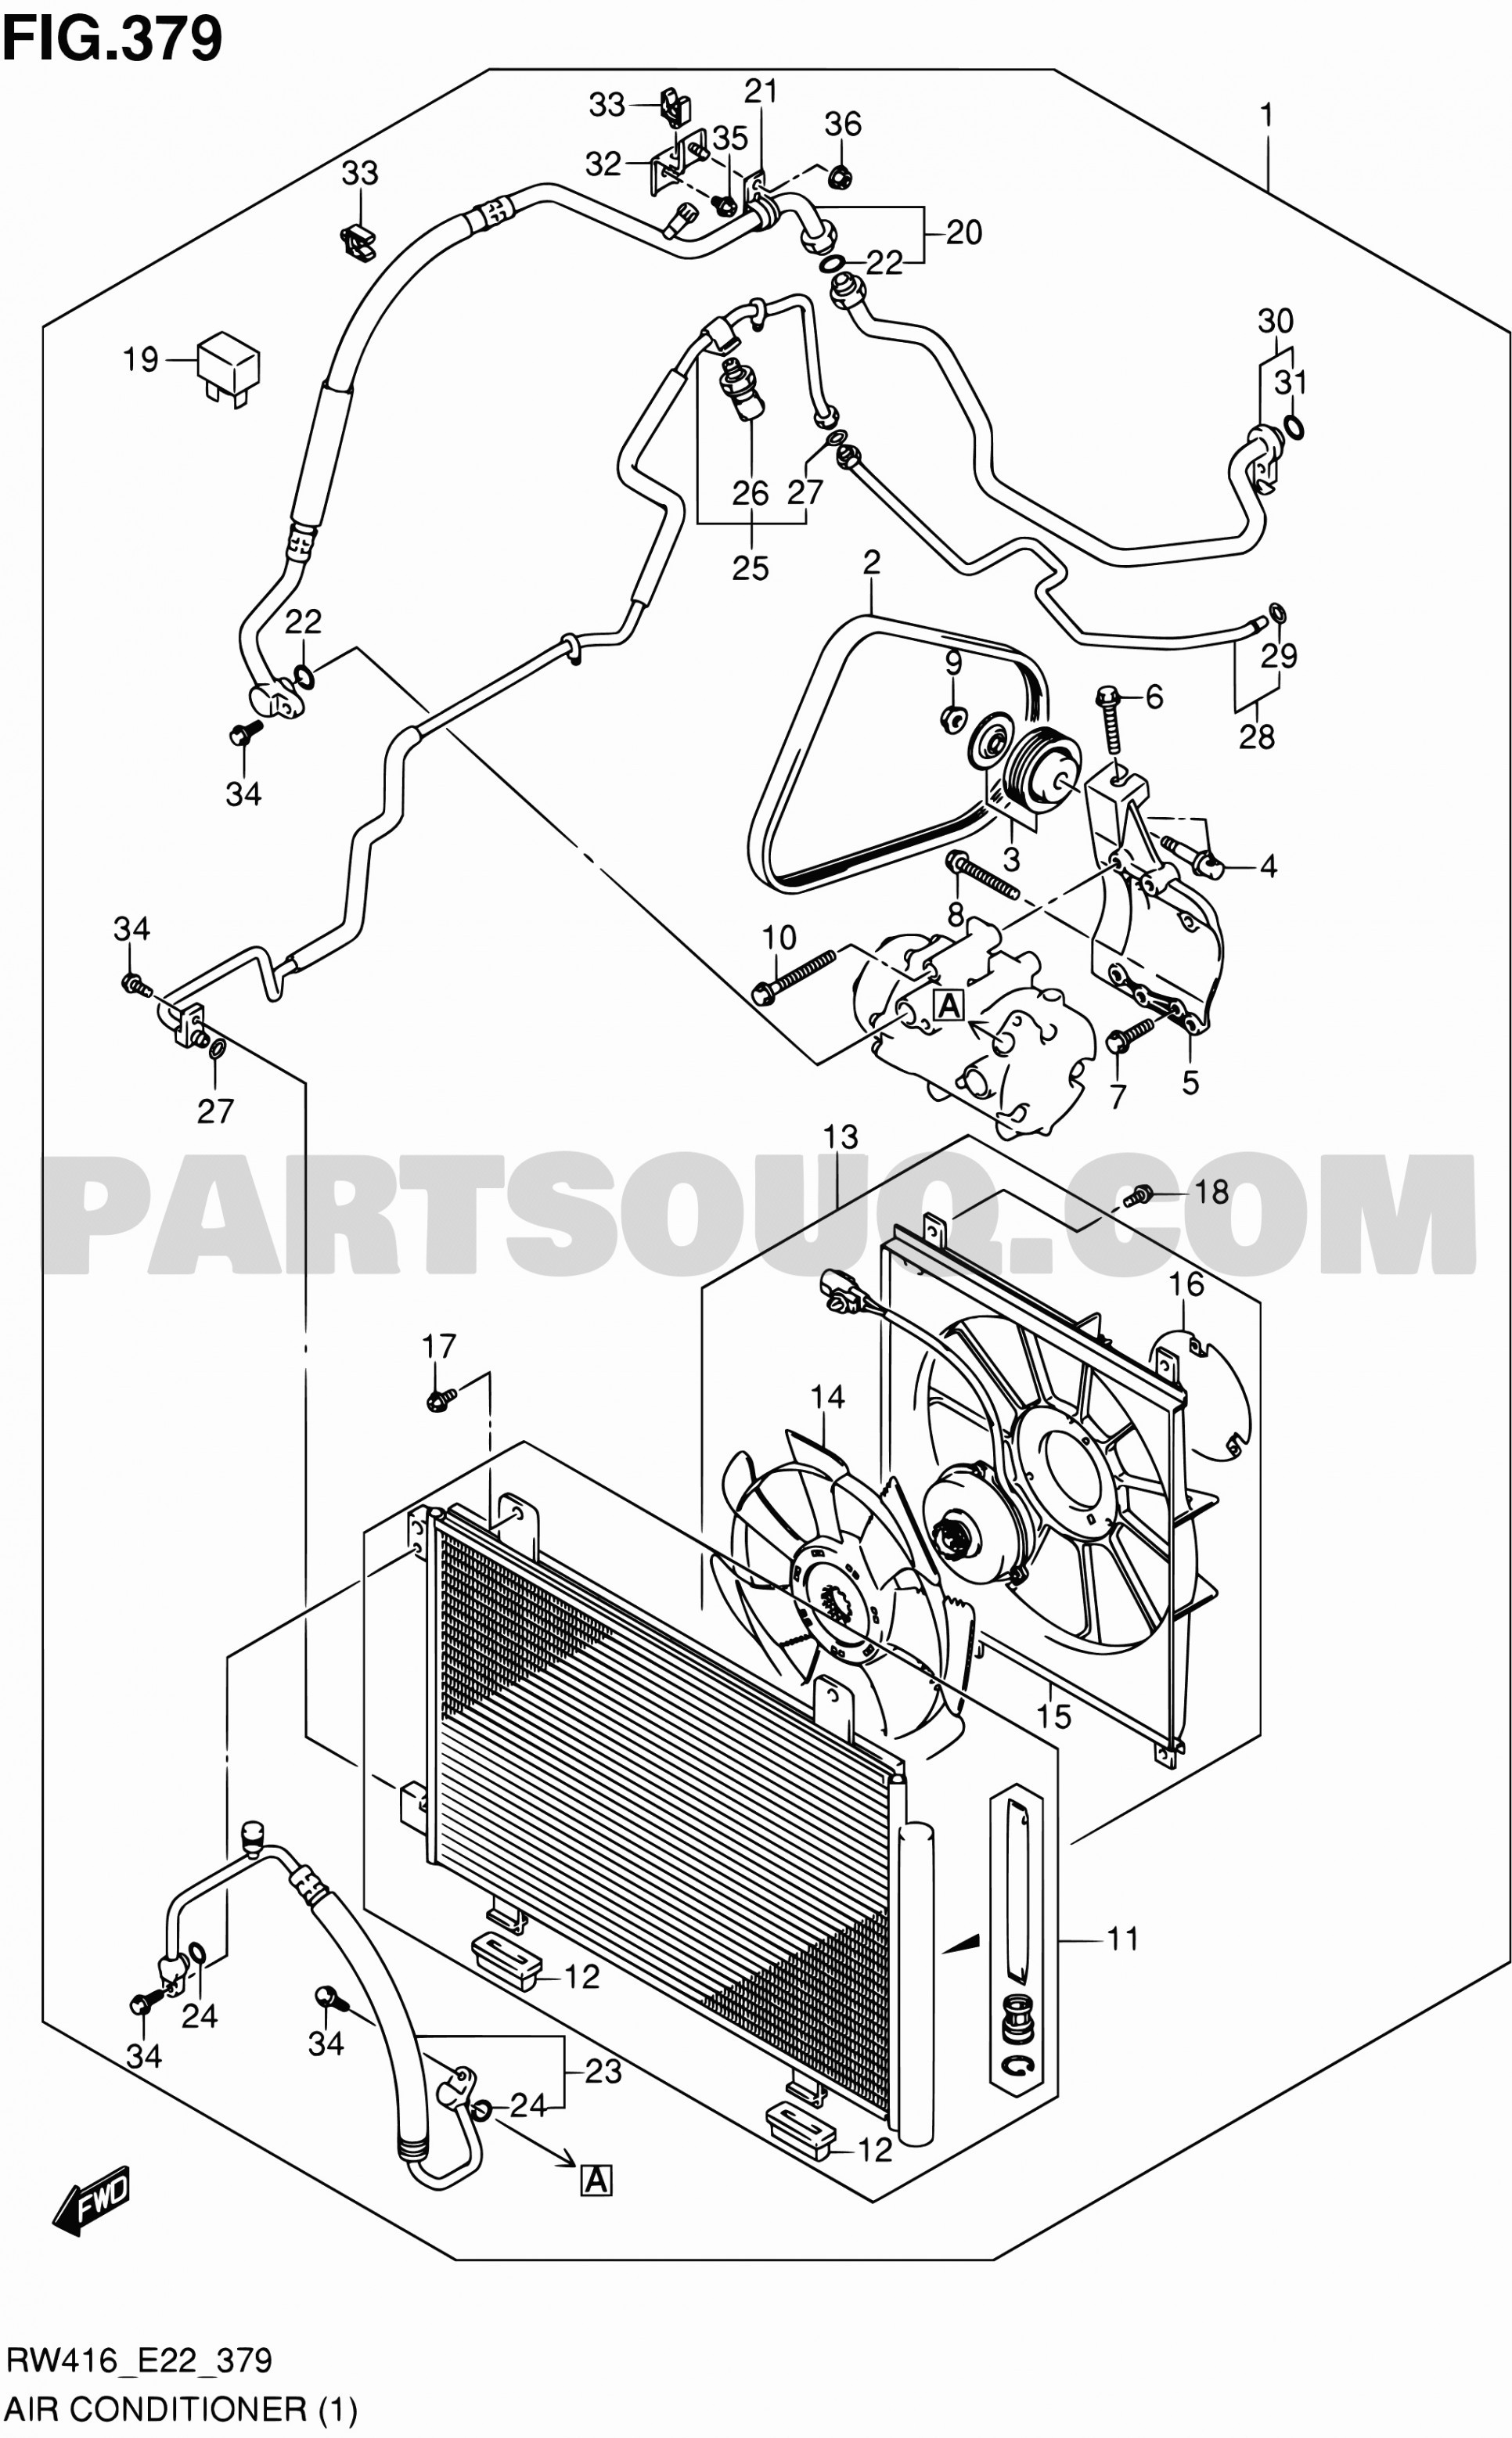 Mercedes Benz Engine Diagram Mercedes Benz Parts Diagram – Diagram Car Best Car Parts and Of Mercedes Benz Engine Diagram Mercedes Benz Parts Diagram – Diagram Car Best Car Parts and